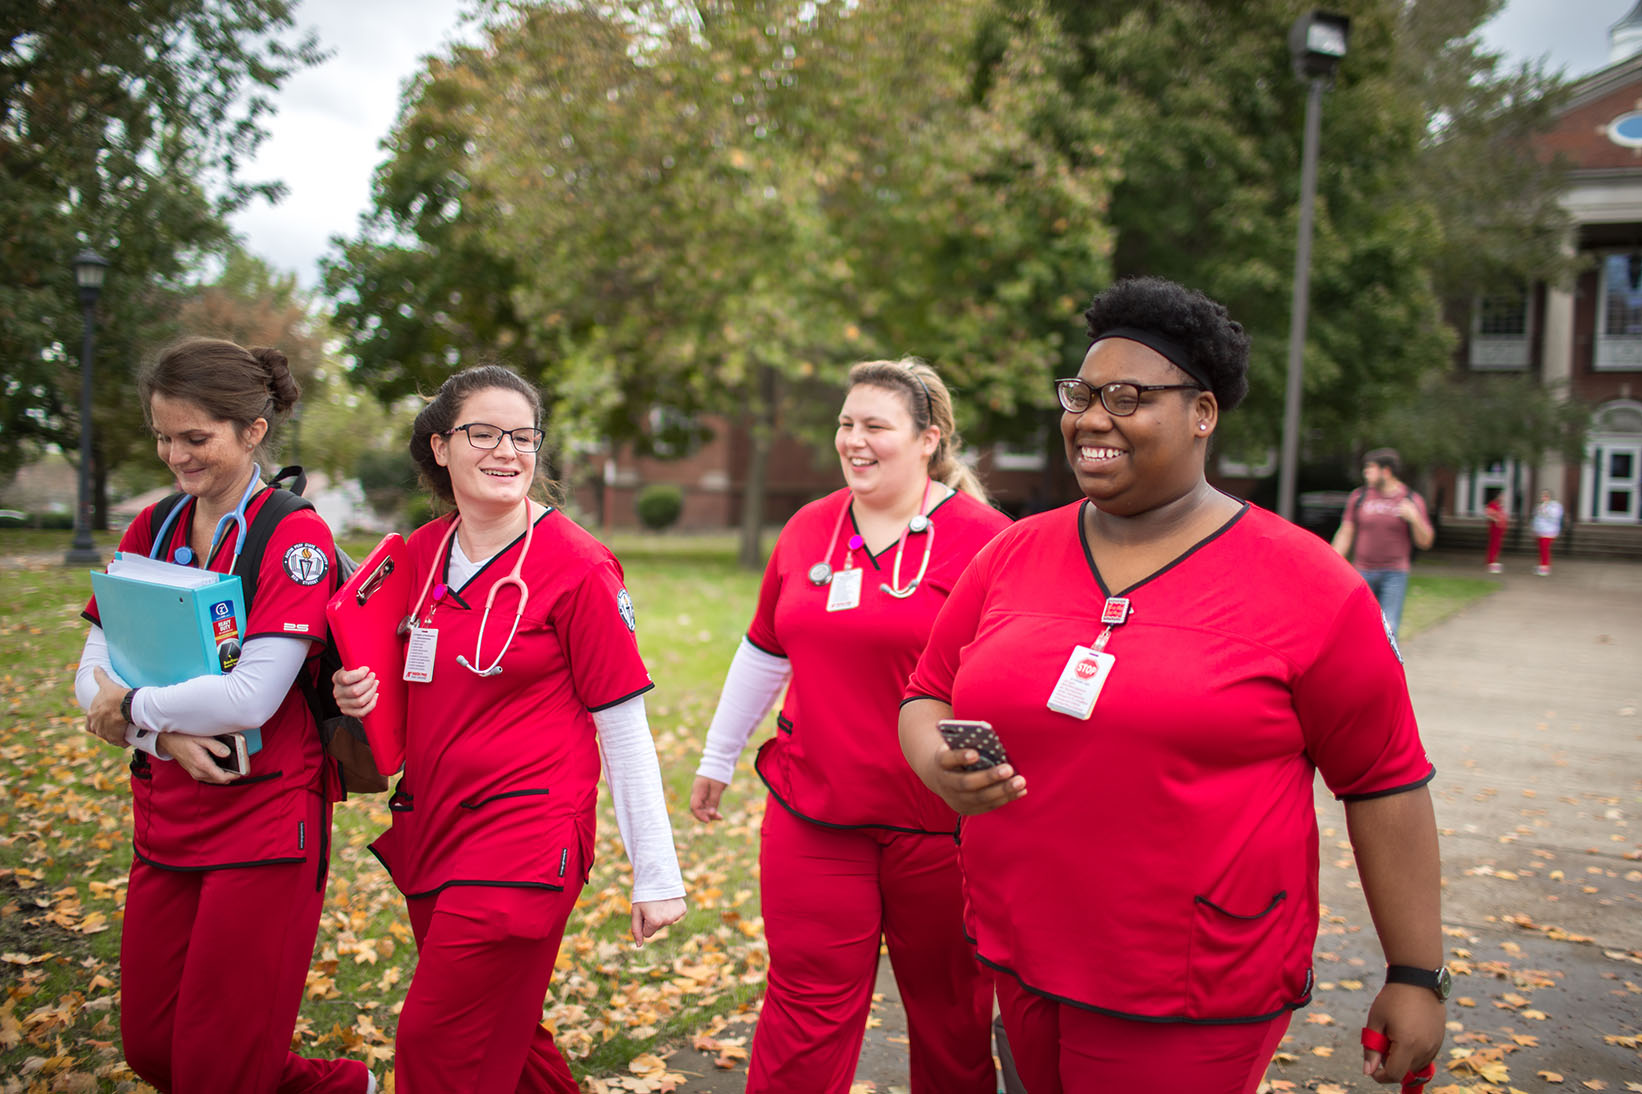 Nursing students walk away from McCord building